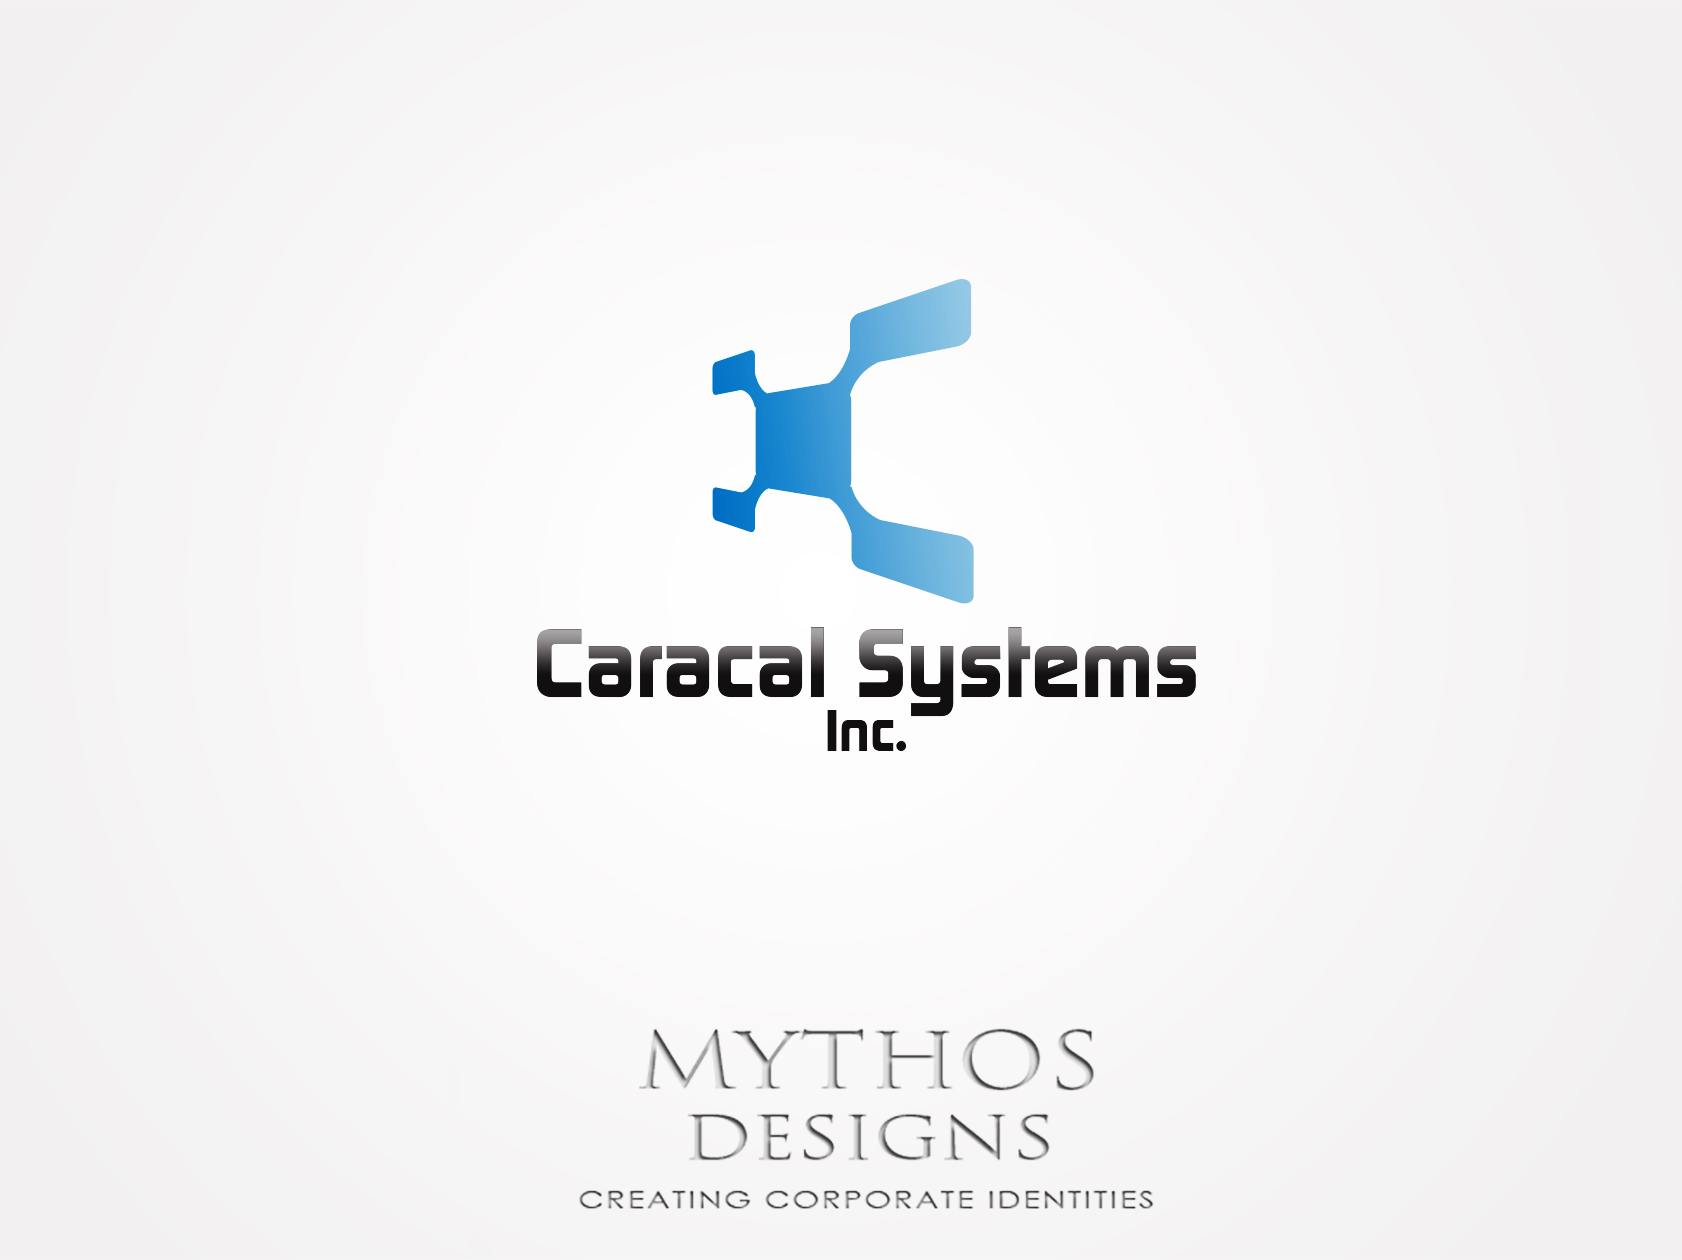 Logo Design by Mythos Designs - Entry No. 113 in the Logo Design Contest Inspiring Logo Design for Caracal Systems Inc..